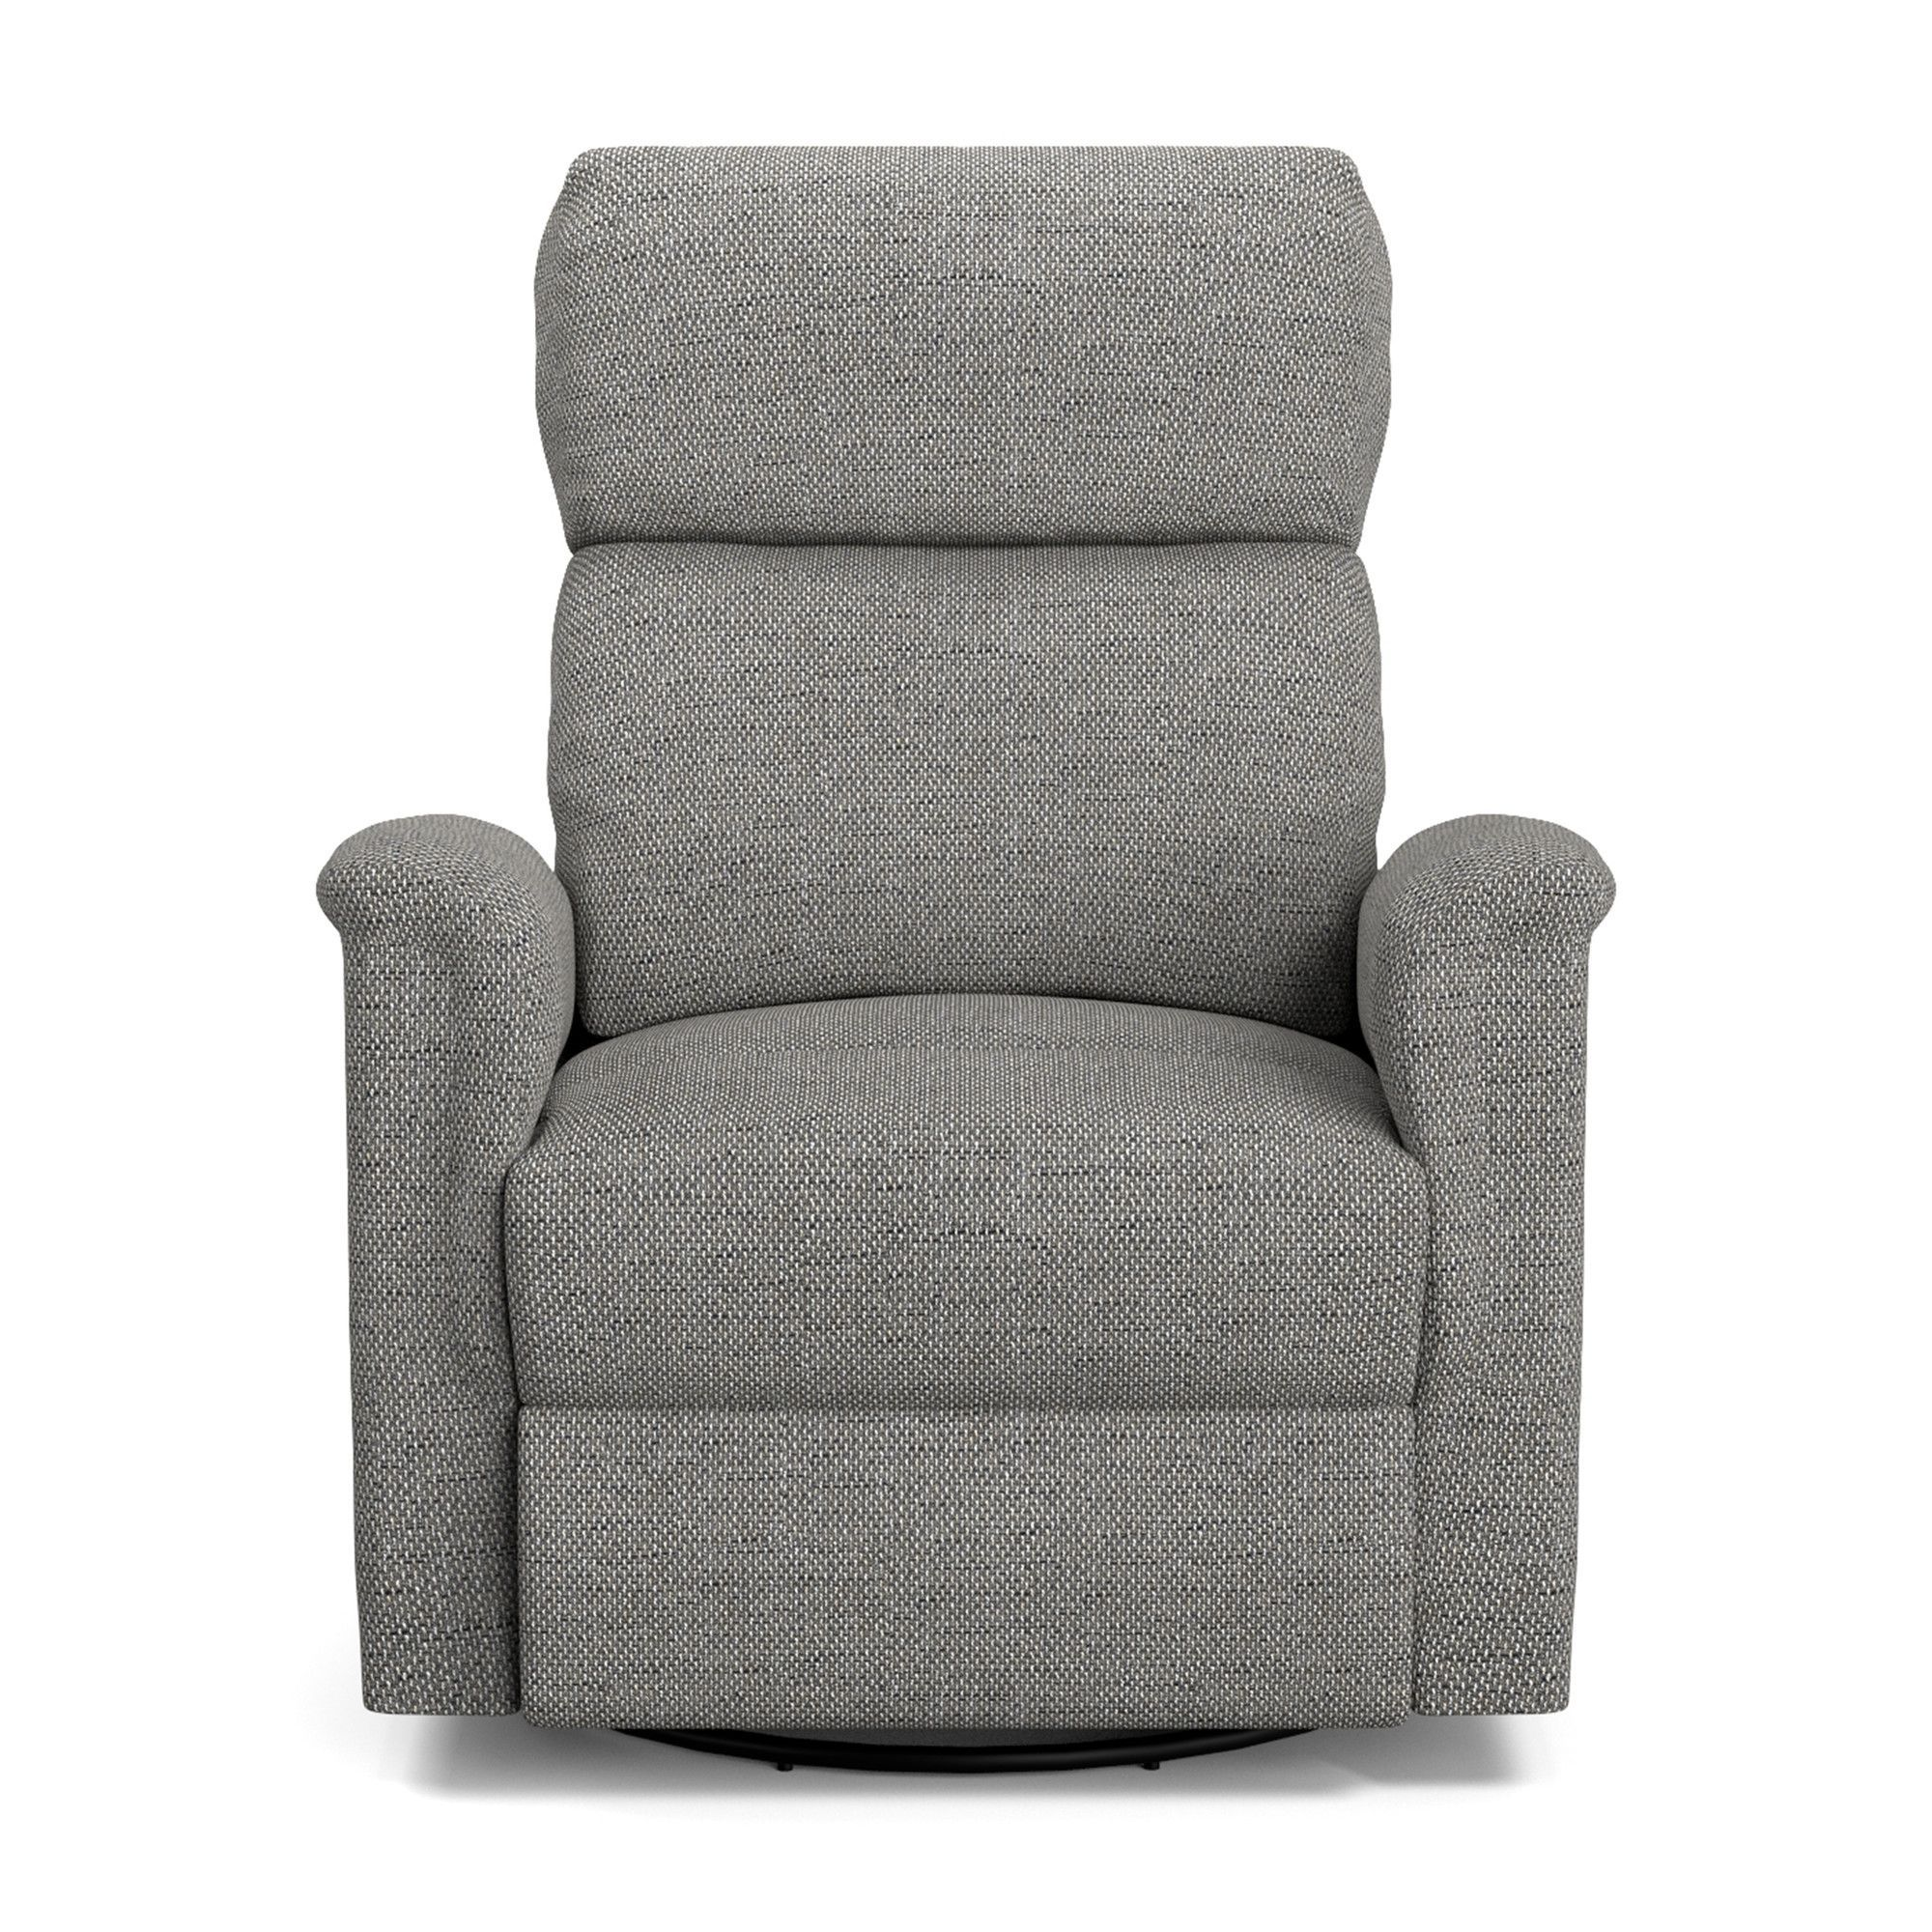 Swivel Glider Recliner Chair (With Images)